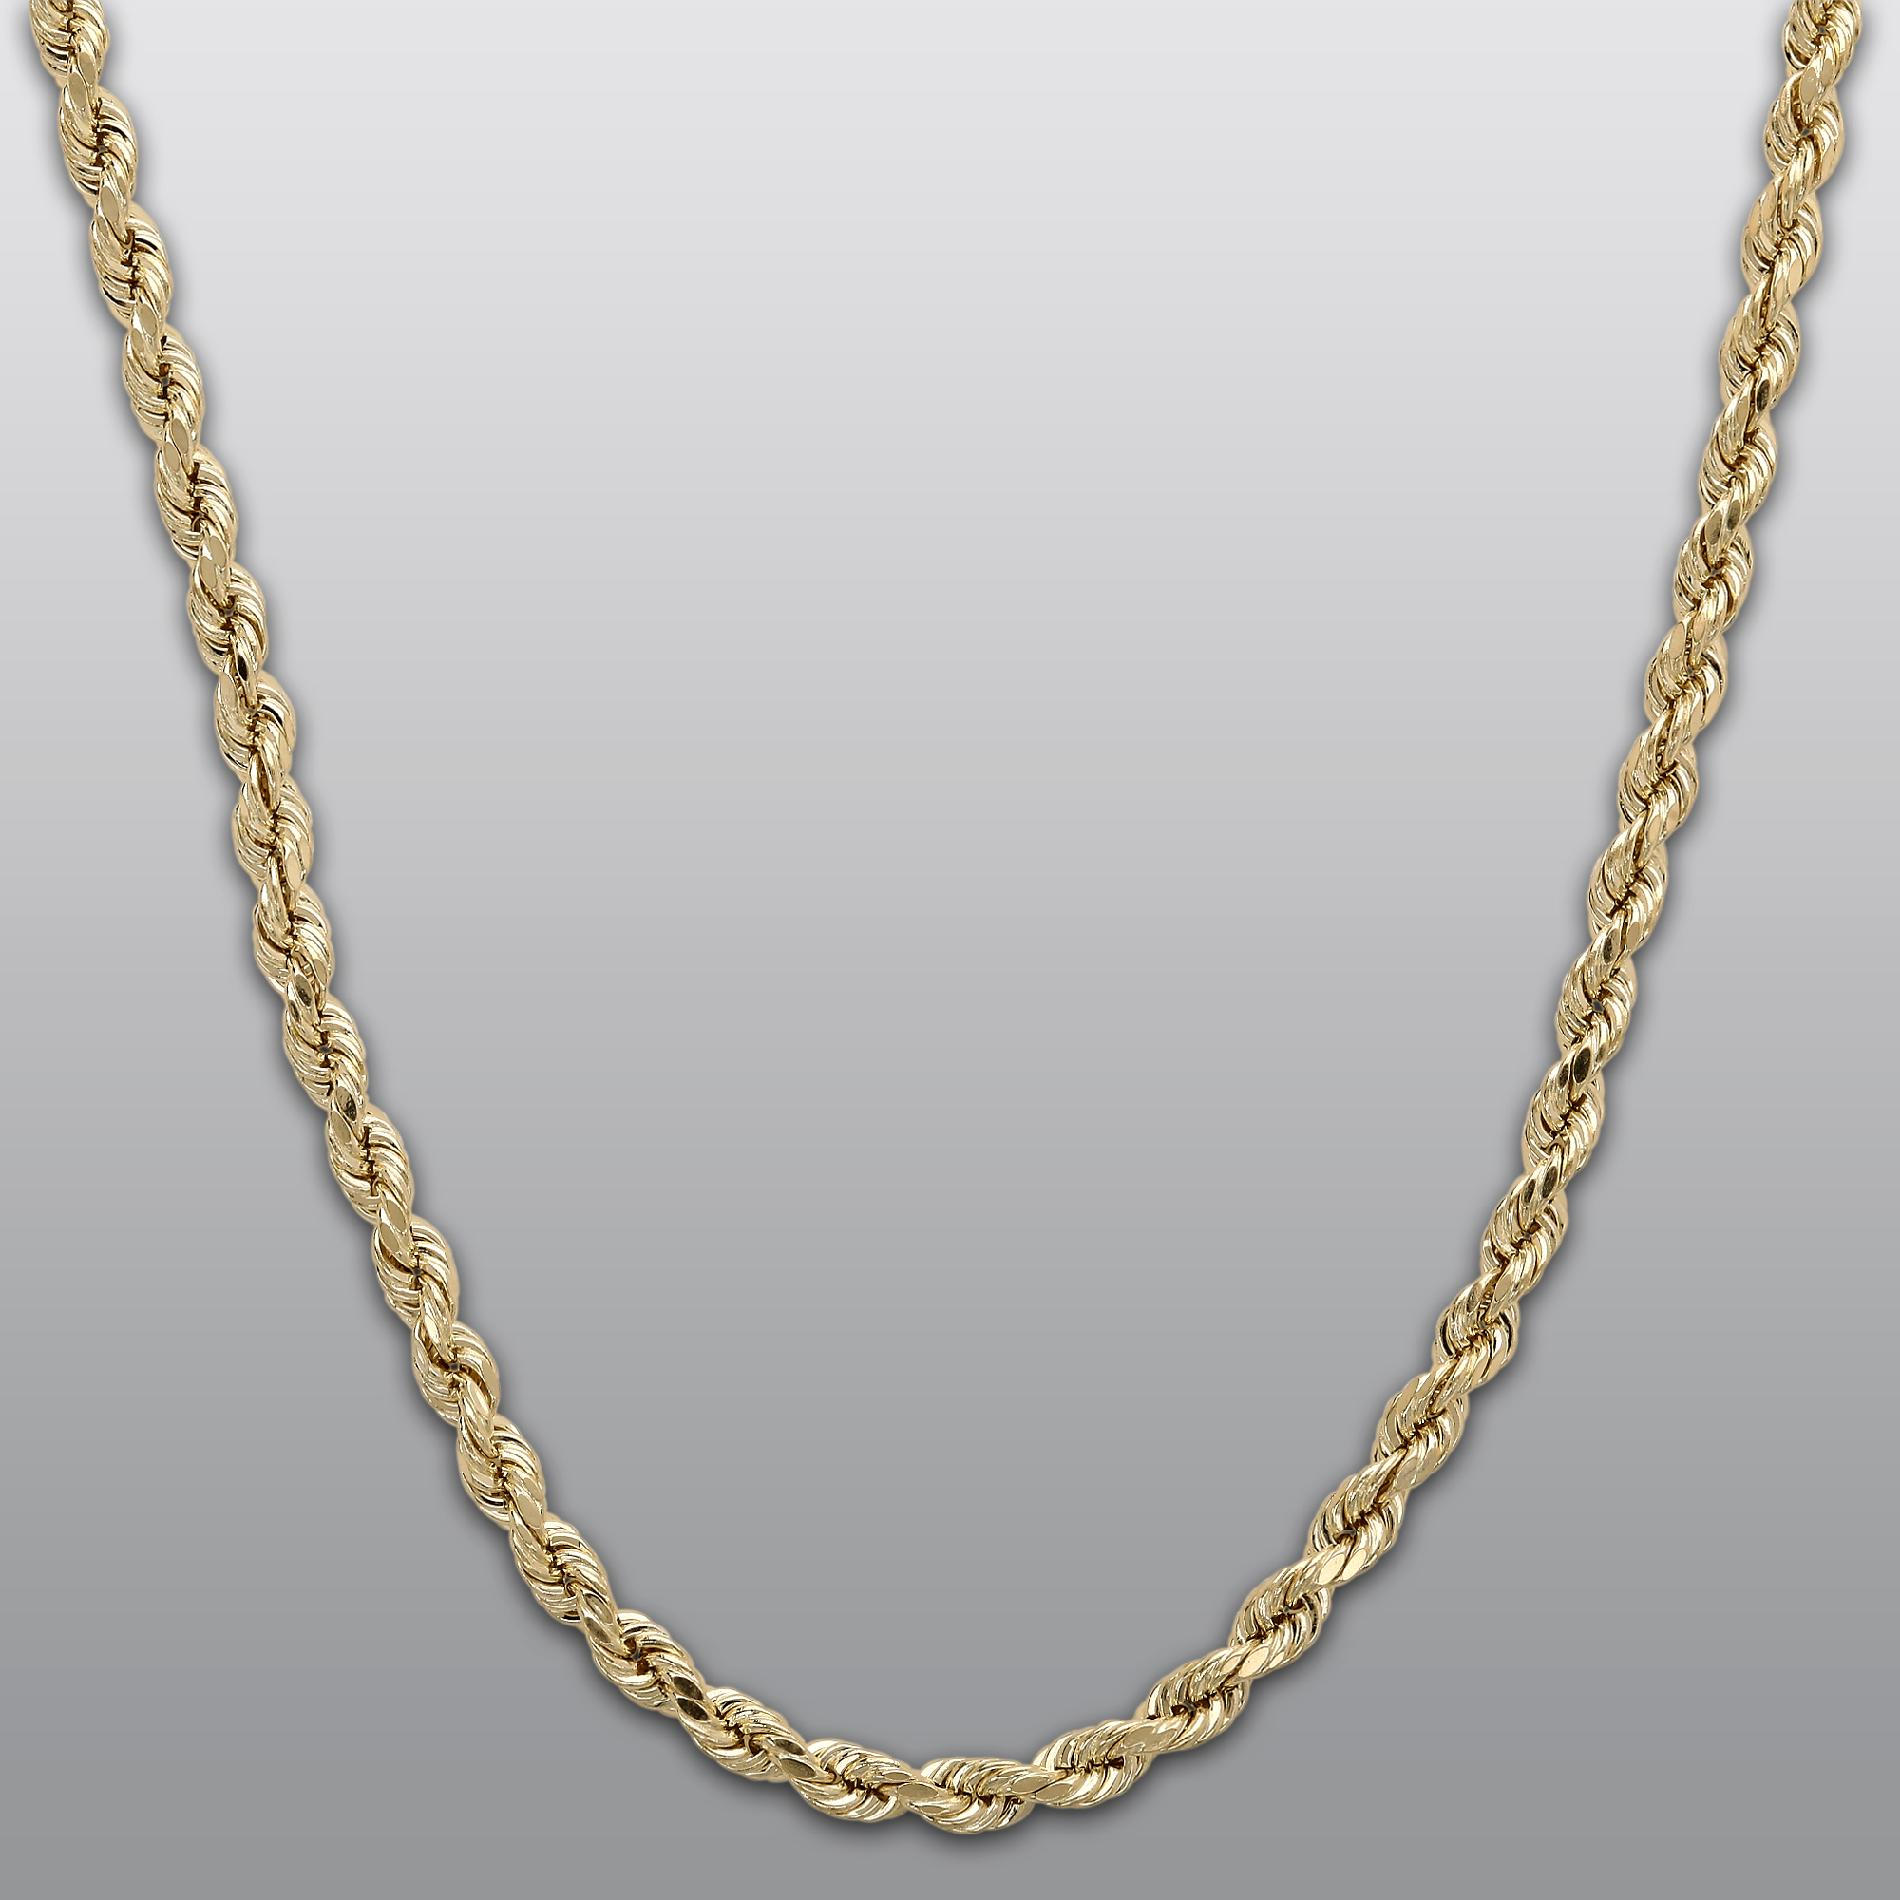 Karat Yellow Gold 18 2.0mm Hollow Rope Chain - Jewelry Pendants & Necklaces